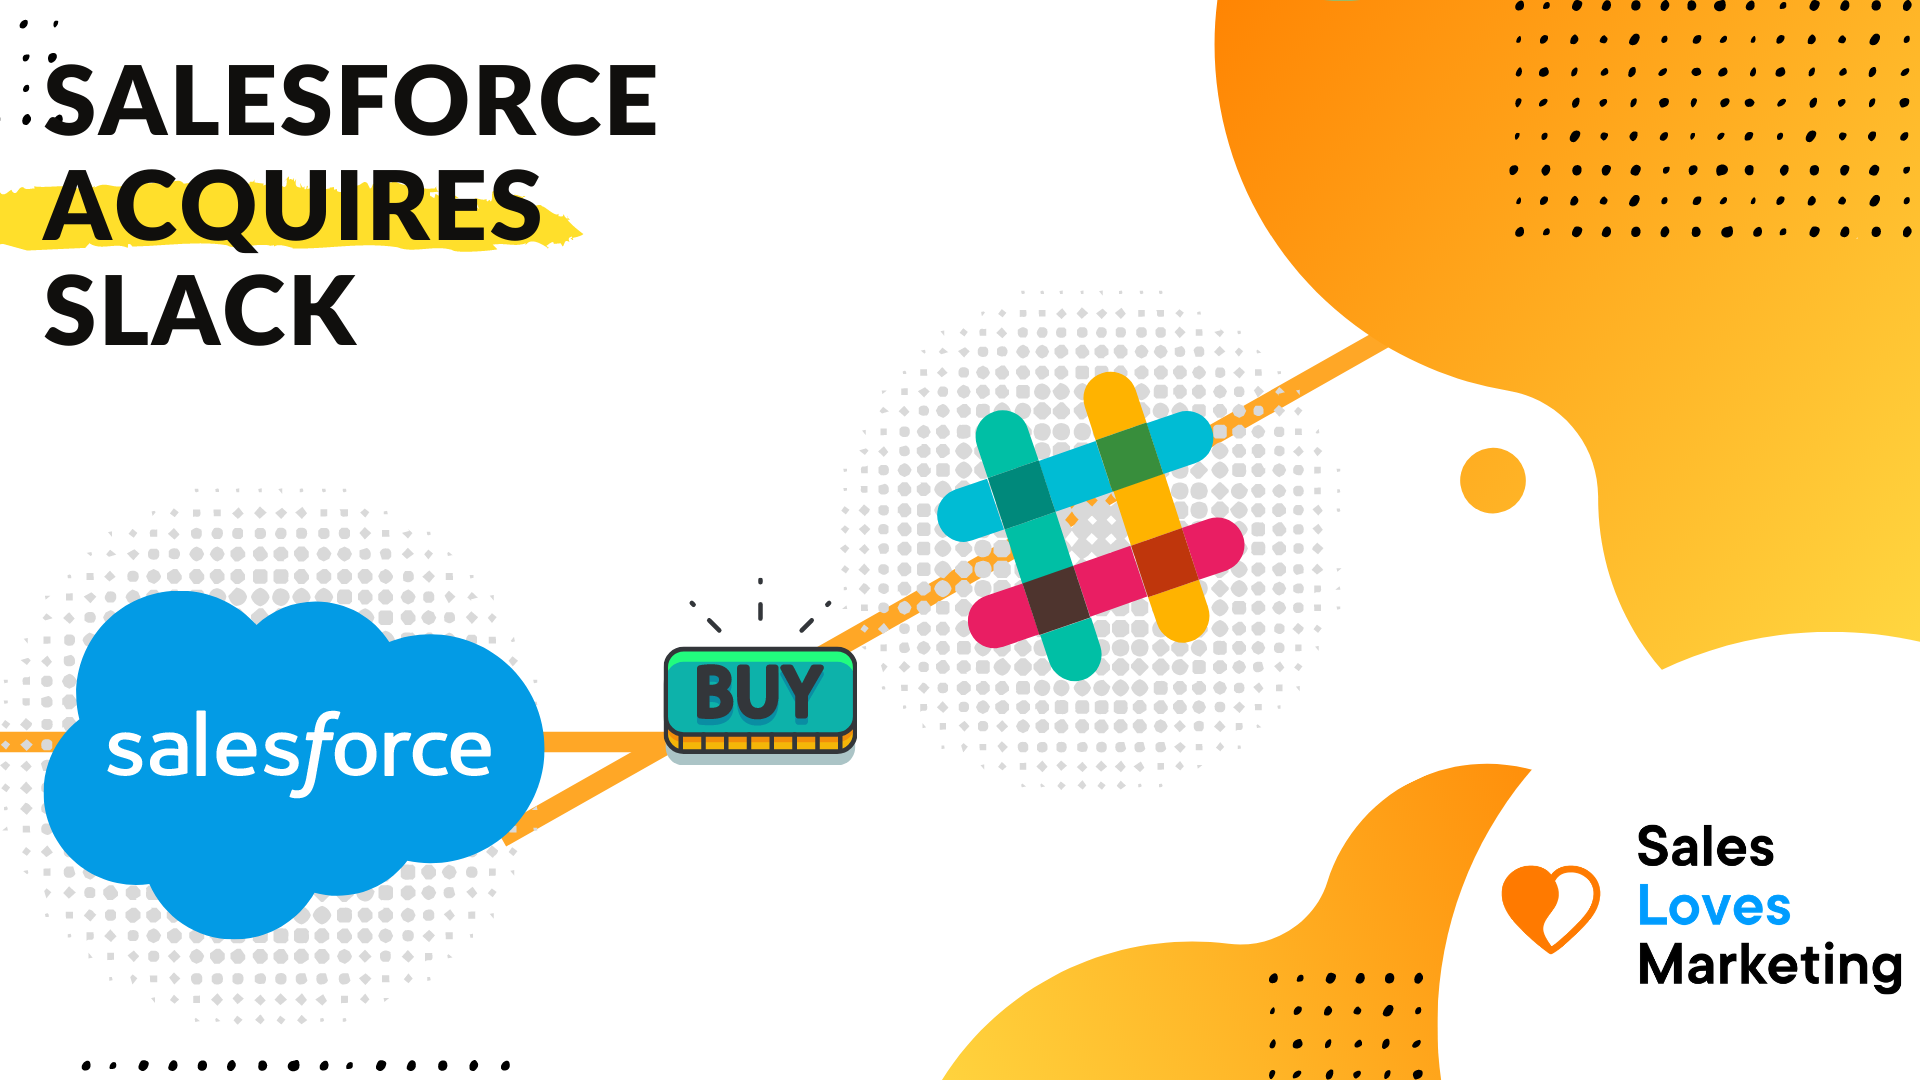 Salesforce acquisition on slack for $27 billion